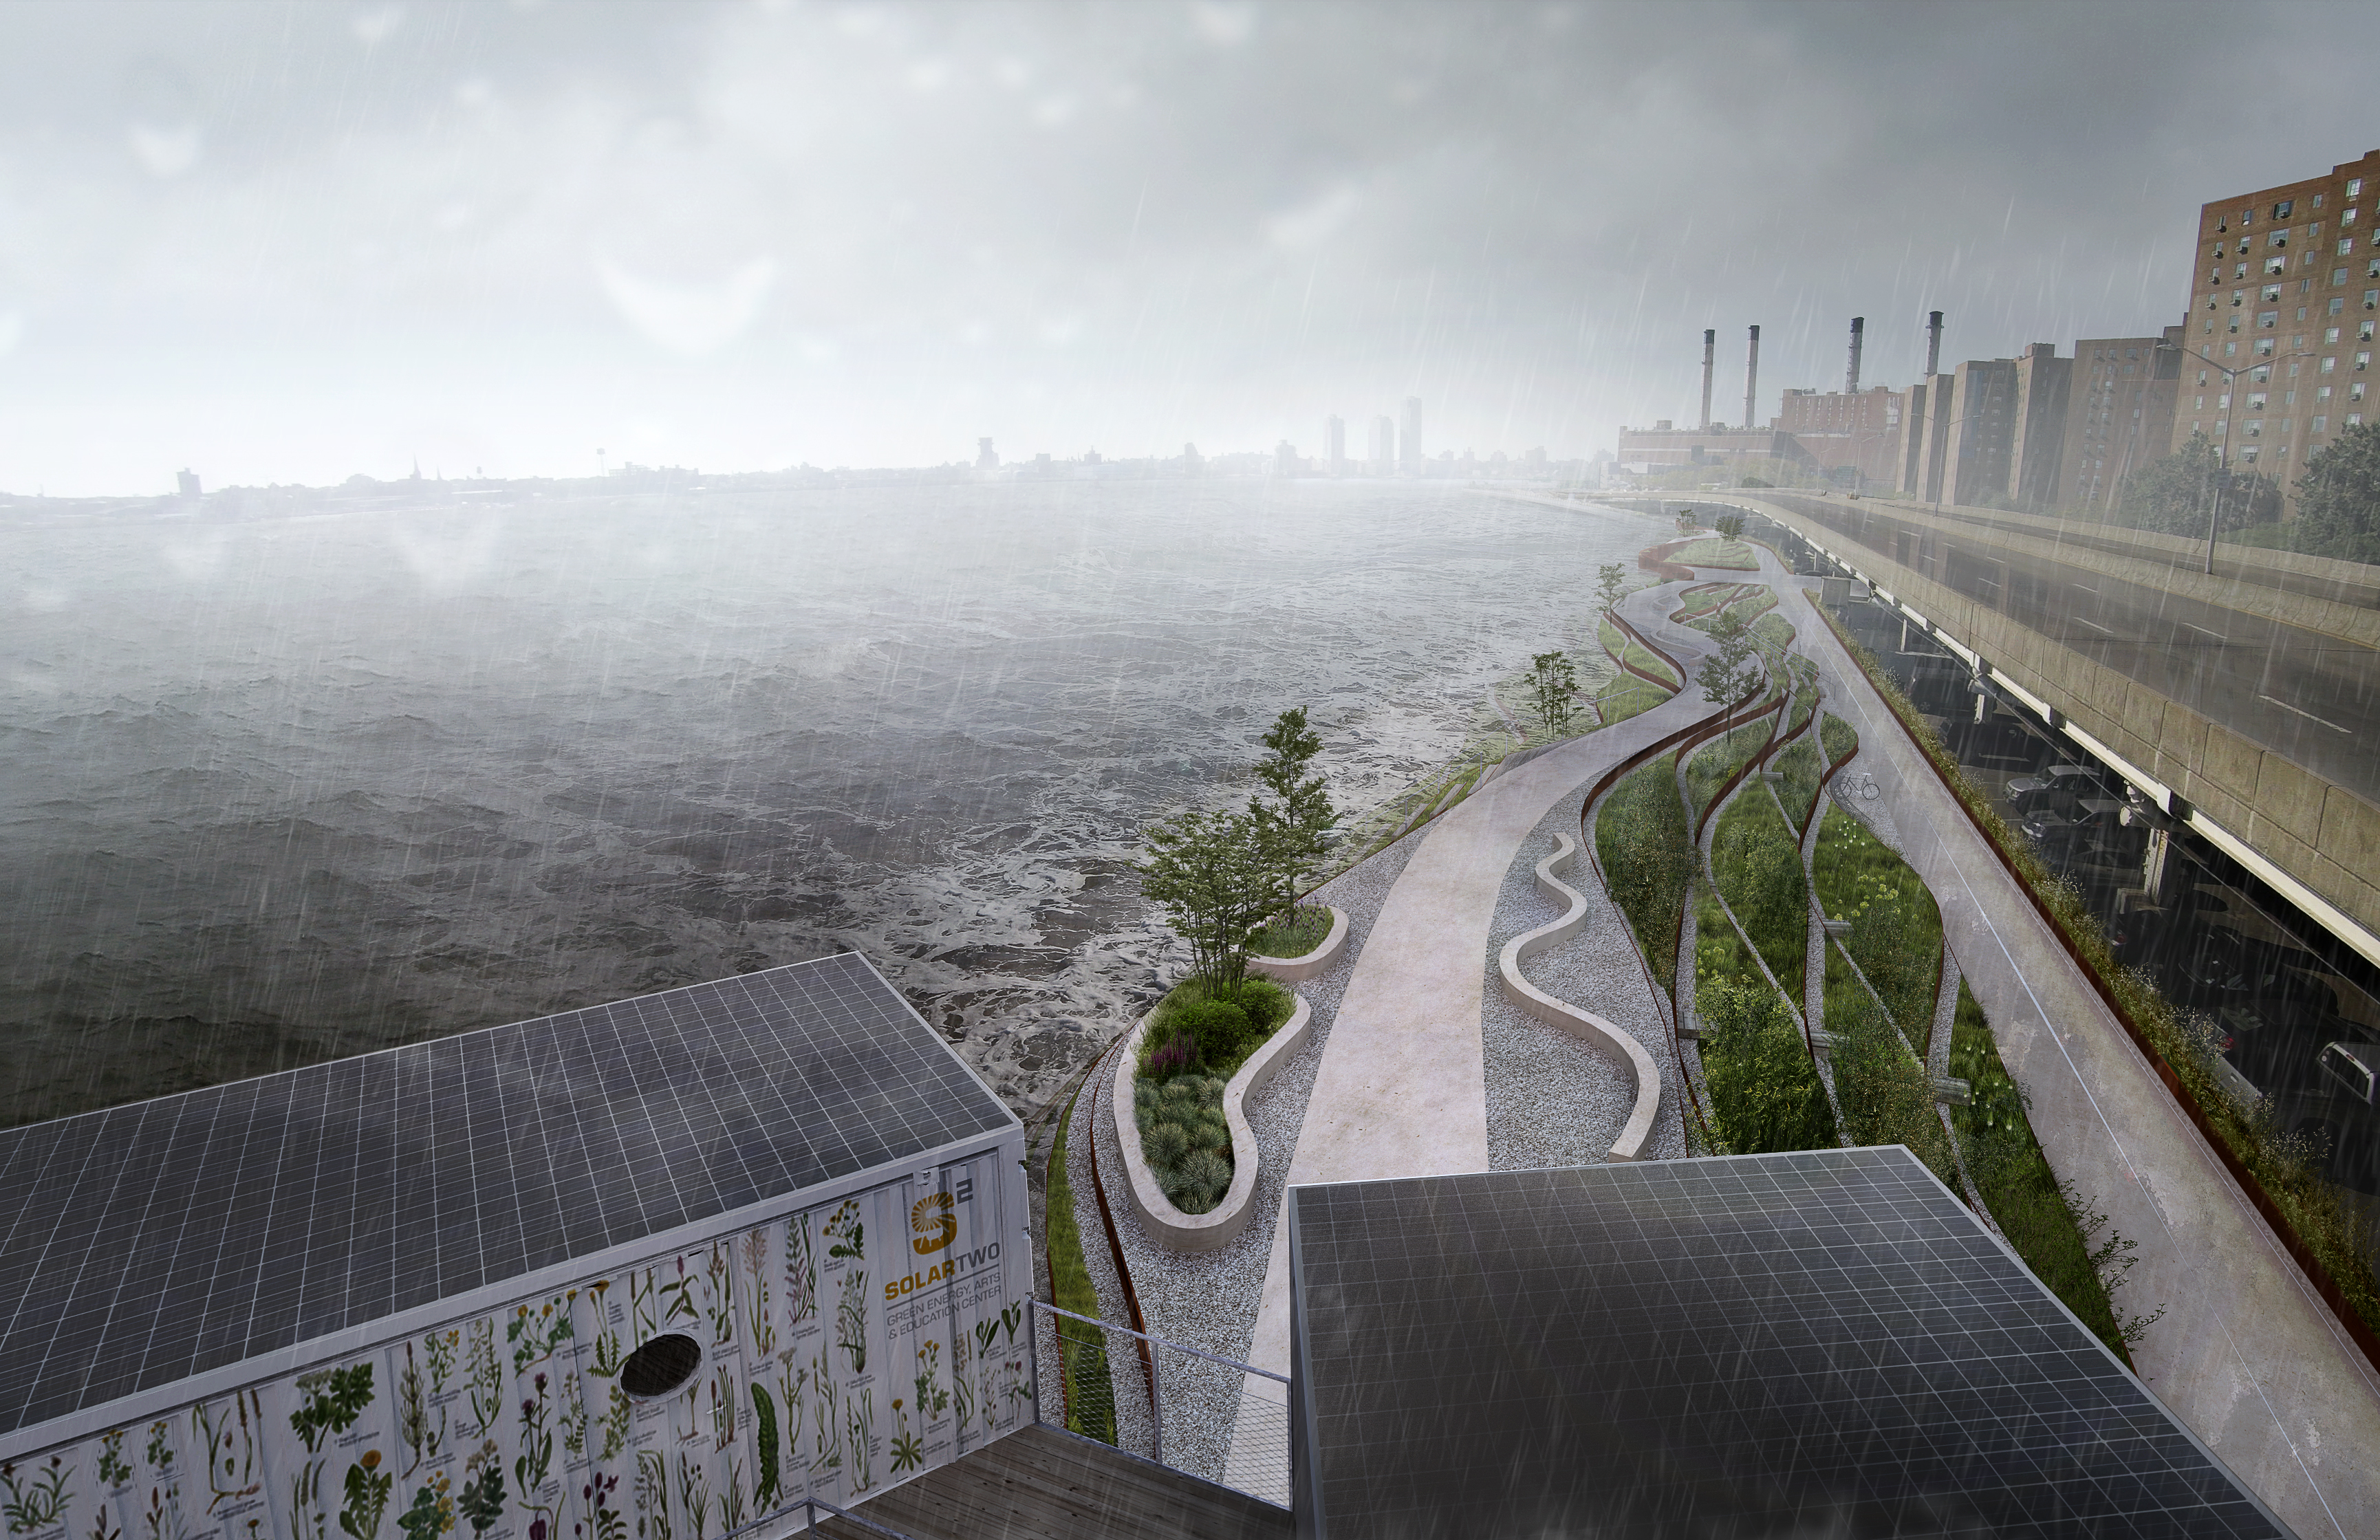 A rendering of the East Side Costal Resiliency Project, aimed at protecting the Lower East Side from storm surges, seen here in stormy weather. (Photo: Rendering Courtesy City of New York)